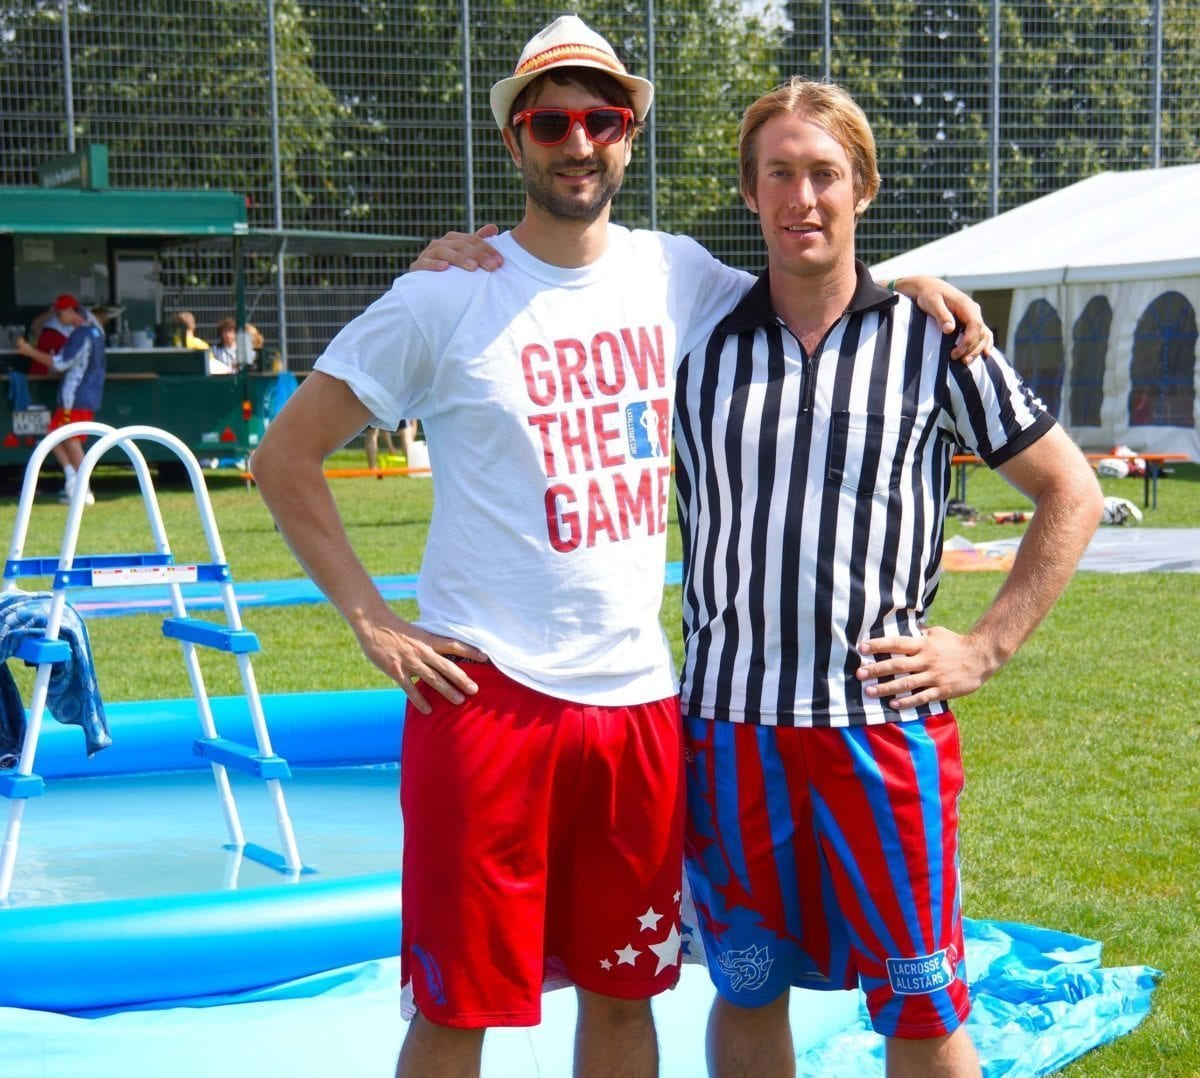 grow the game europe lacrosse